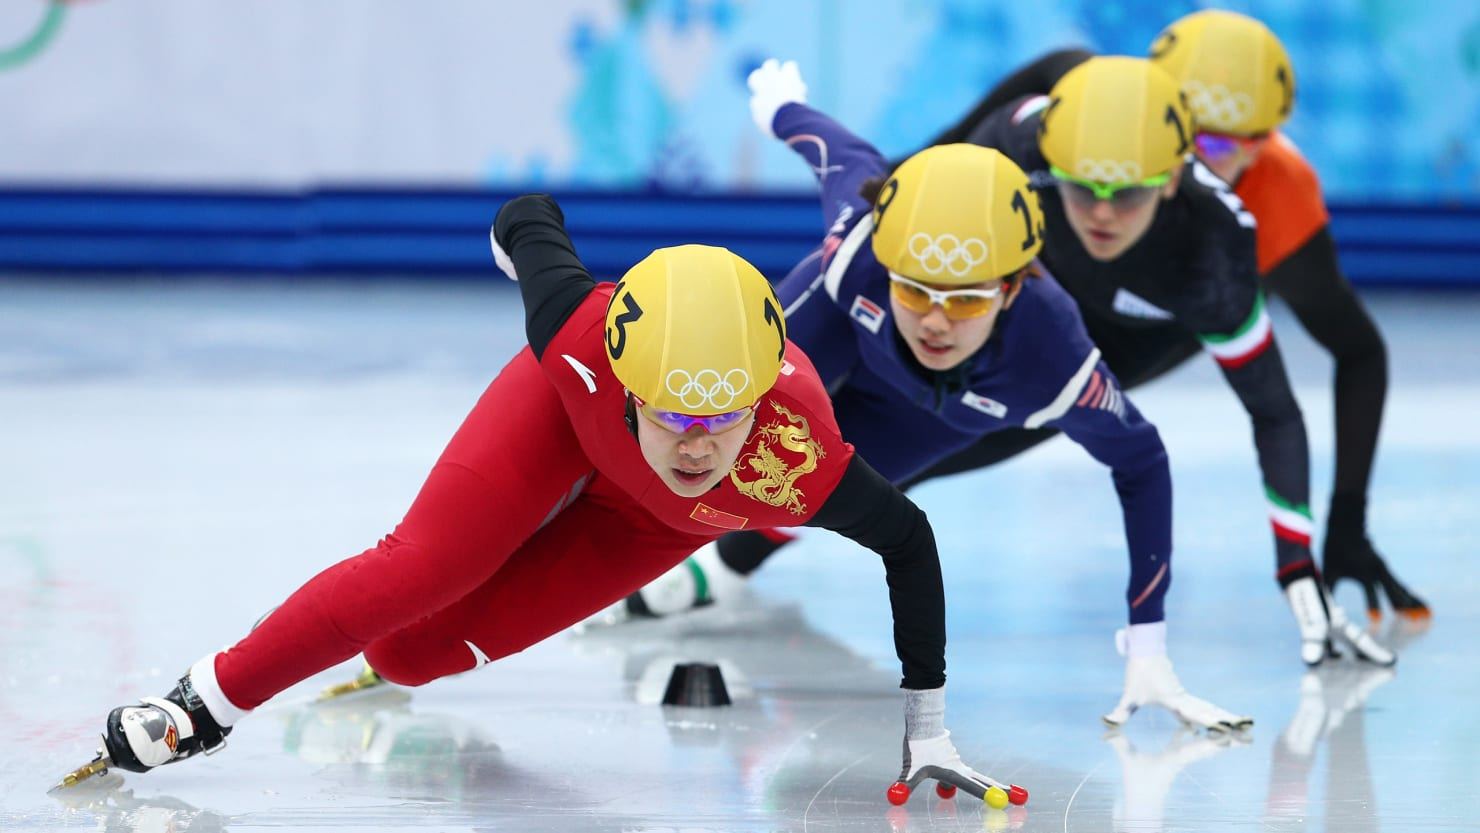 Short Track Speed Skating 2018 Olympics: Full Schedule and ...